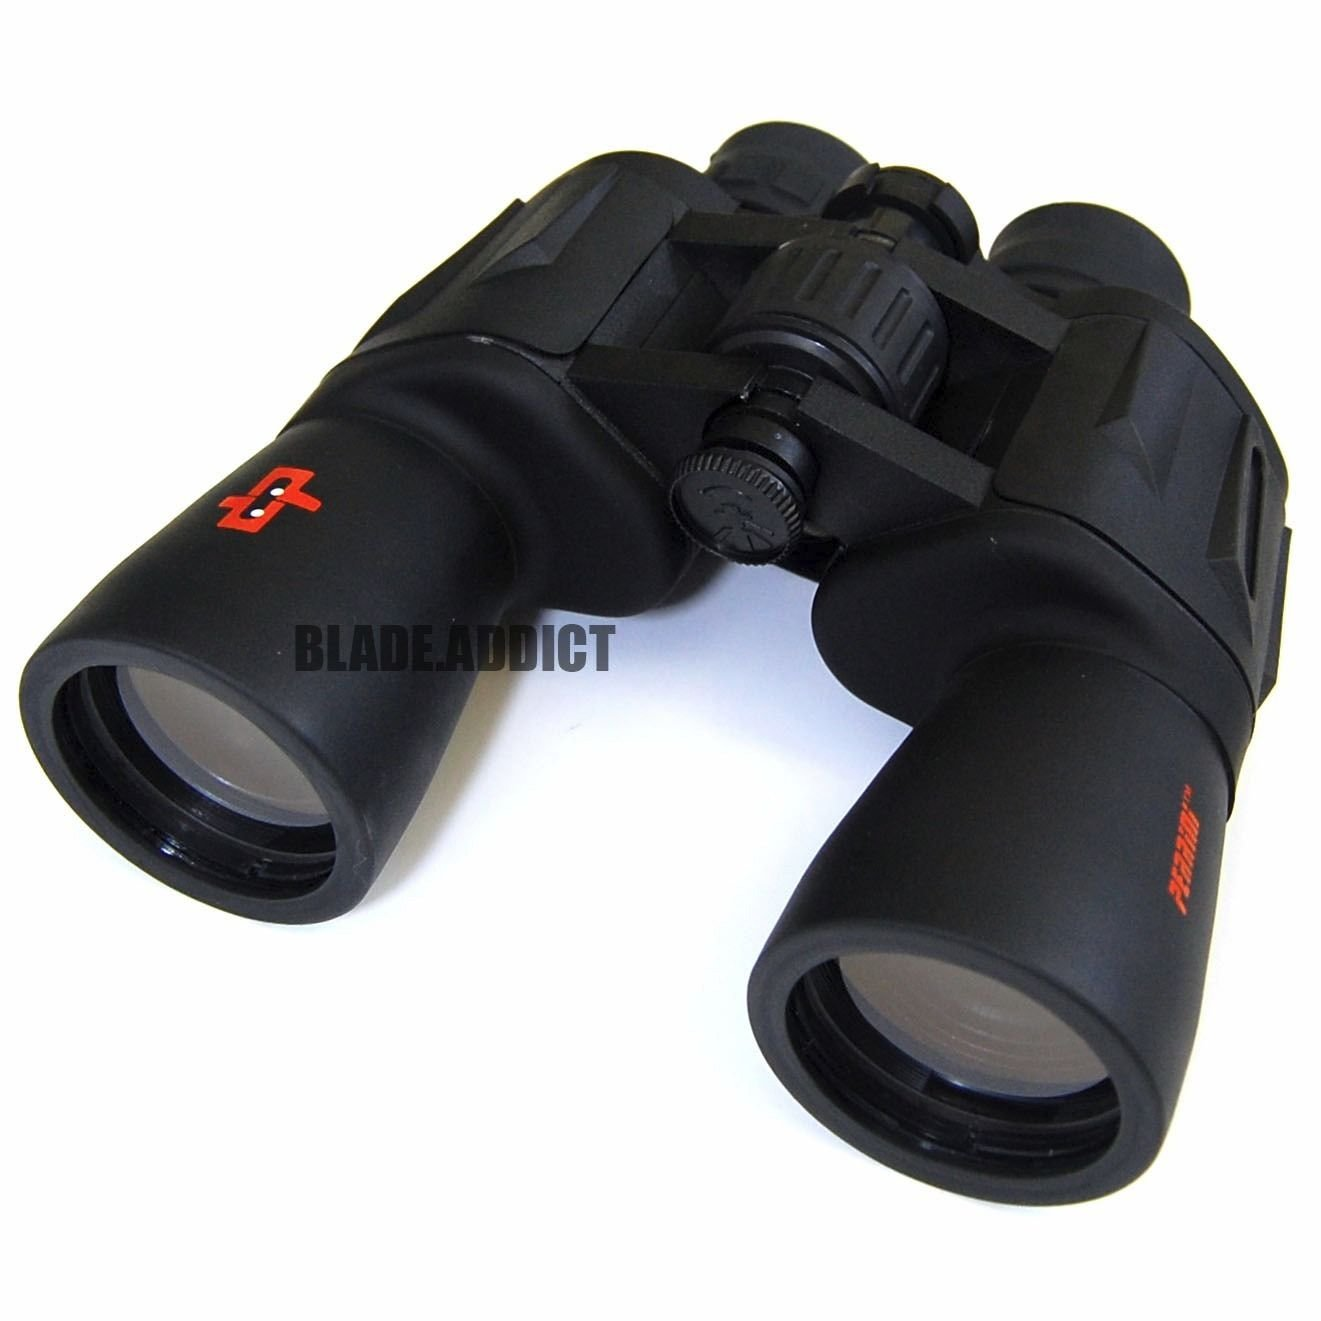 PERRINI Day/Night 30x50 Military Powerful HI-DEF HD Binoculars Optics Hunting Camping by PERRINI